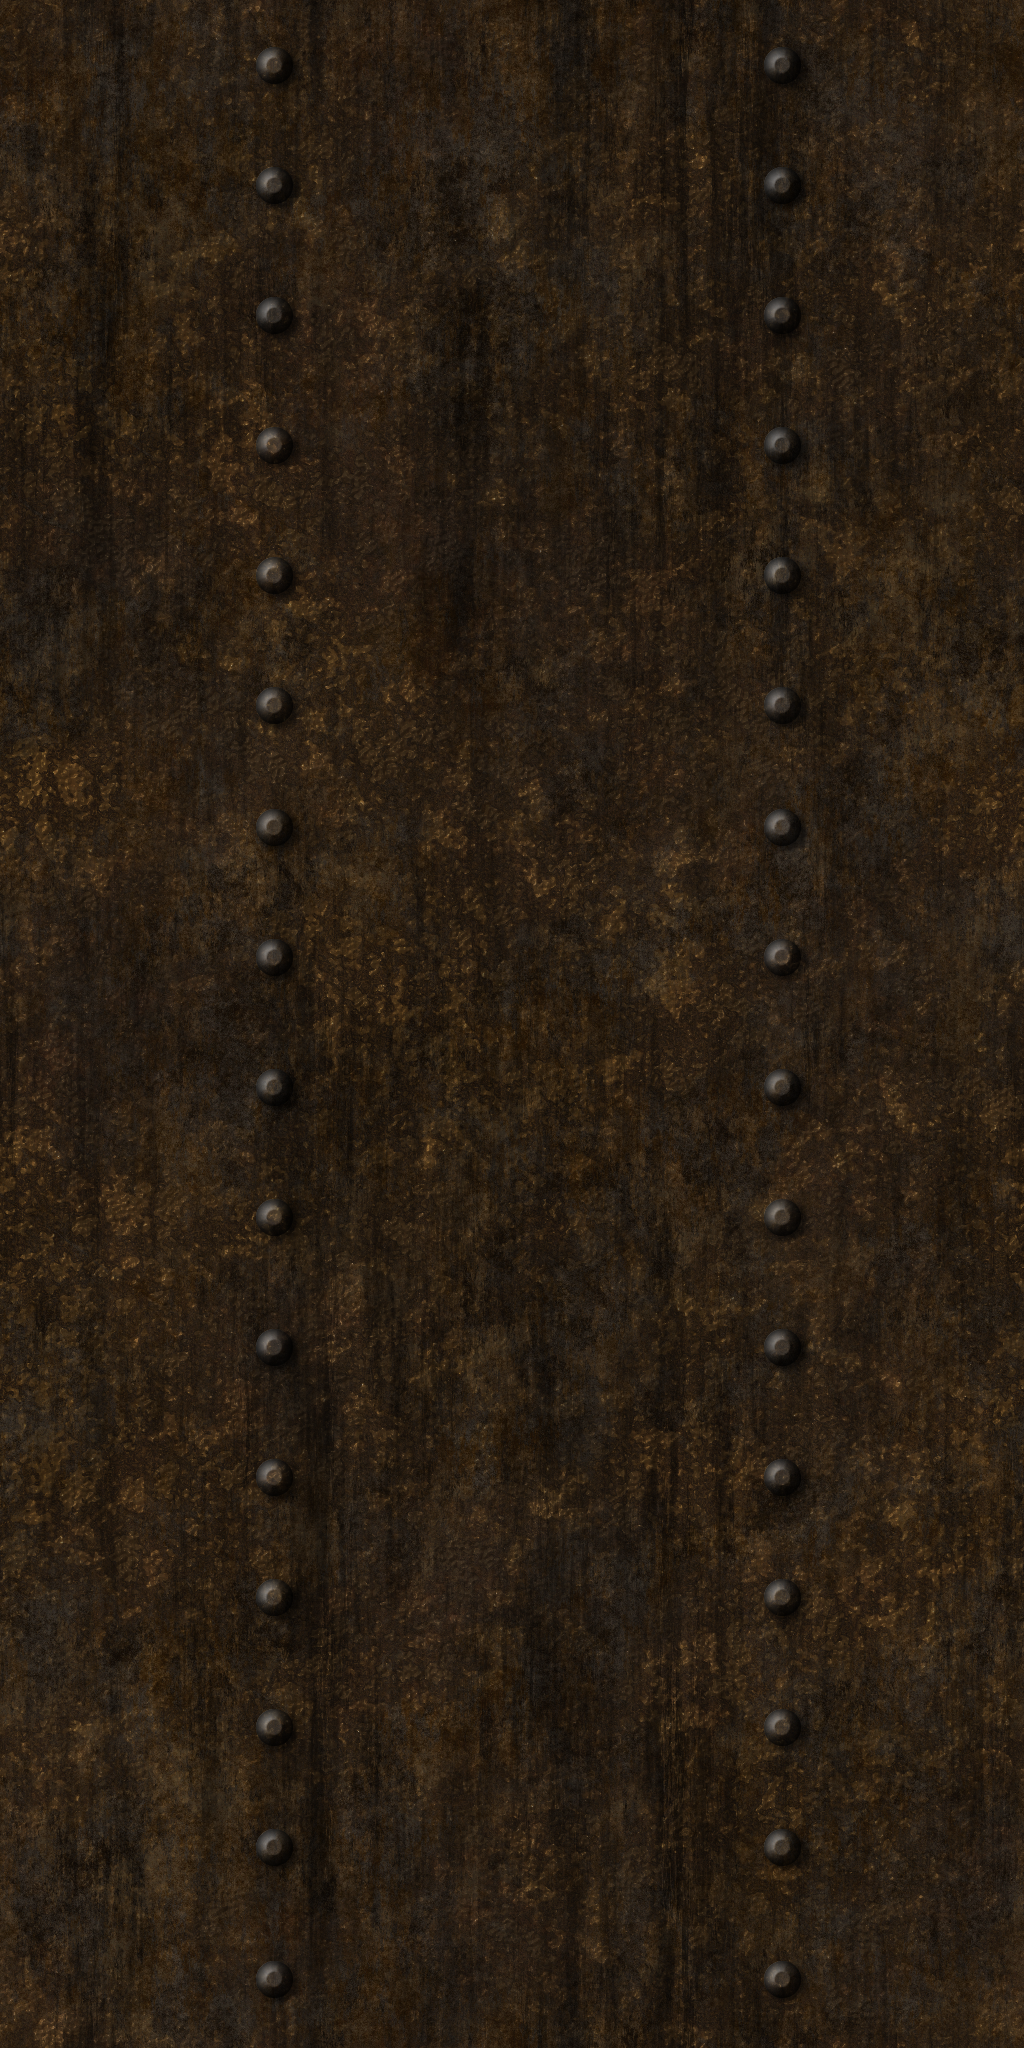 Rusted Wall 01 by Hoover1979